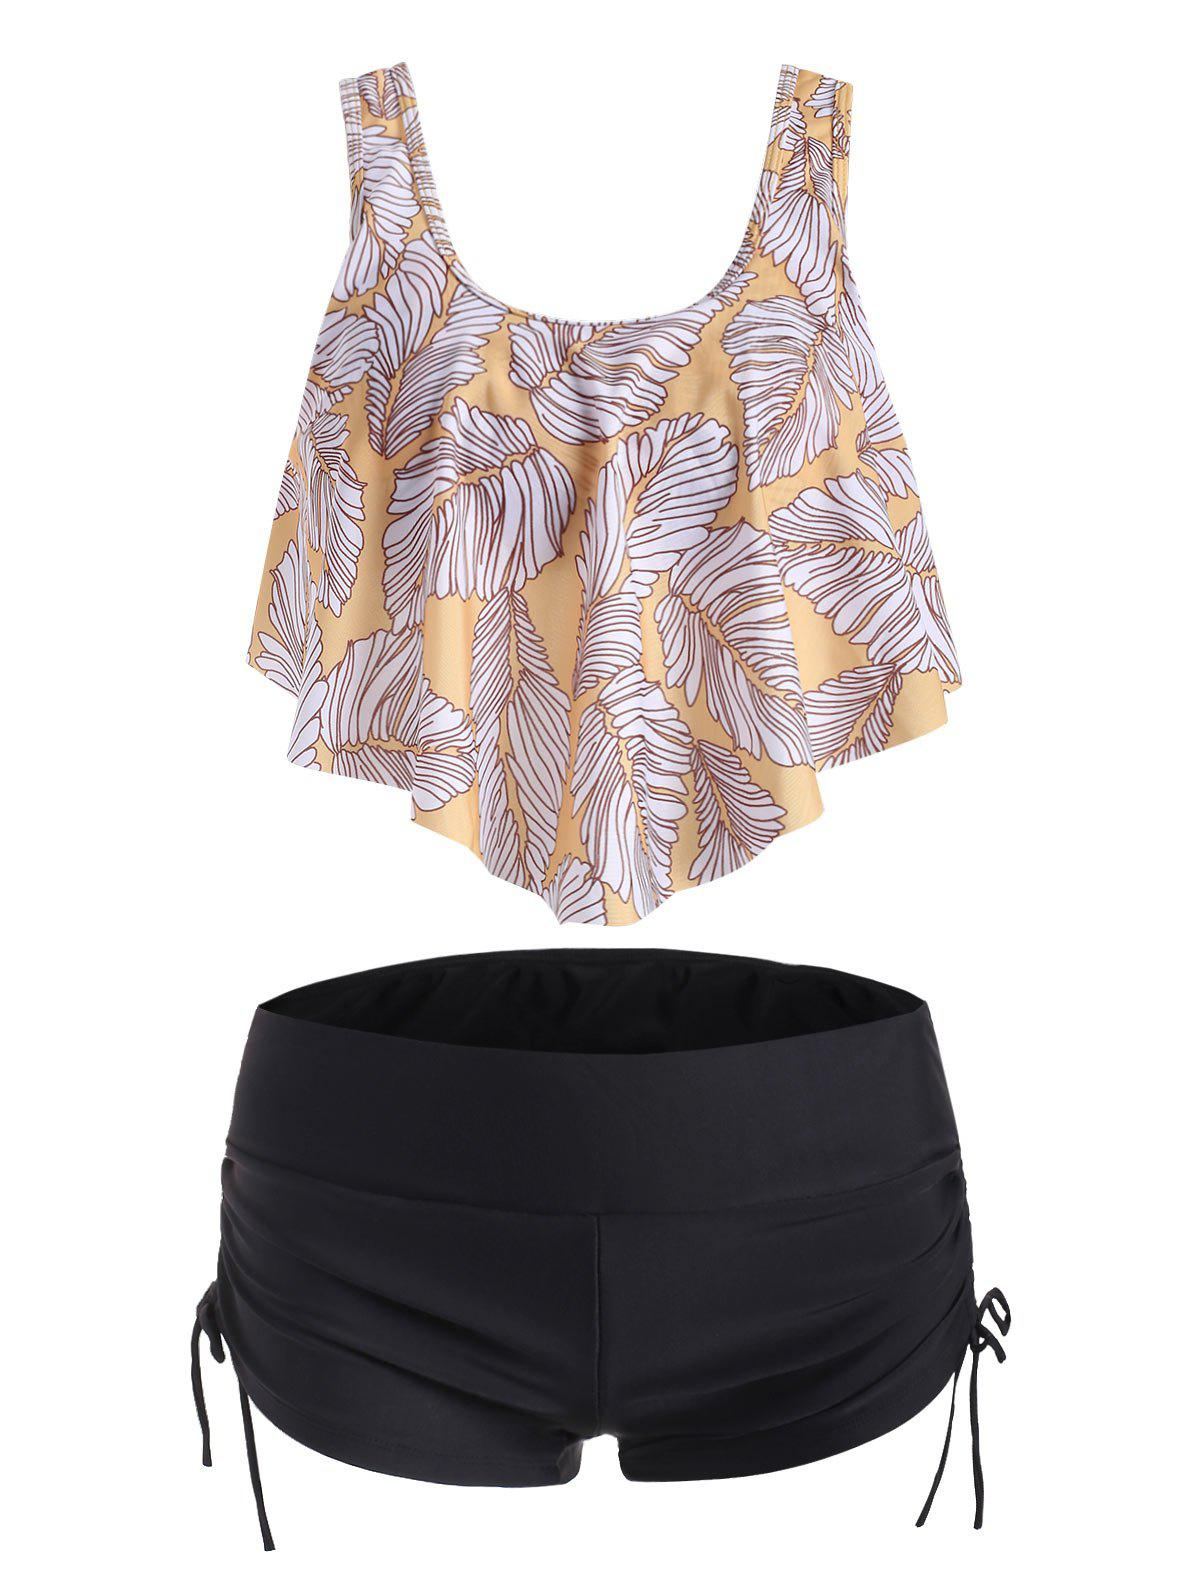 Overlay Flounces Cinched Leaves Print Tankini Swimsuit - GOLDENROD XL